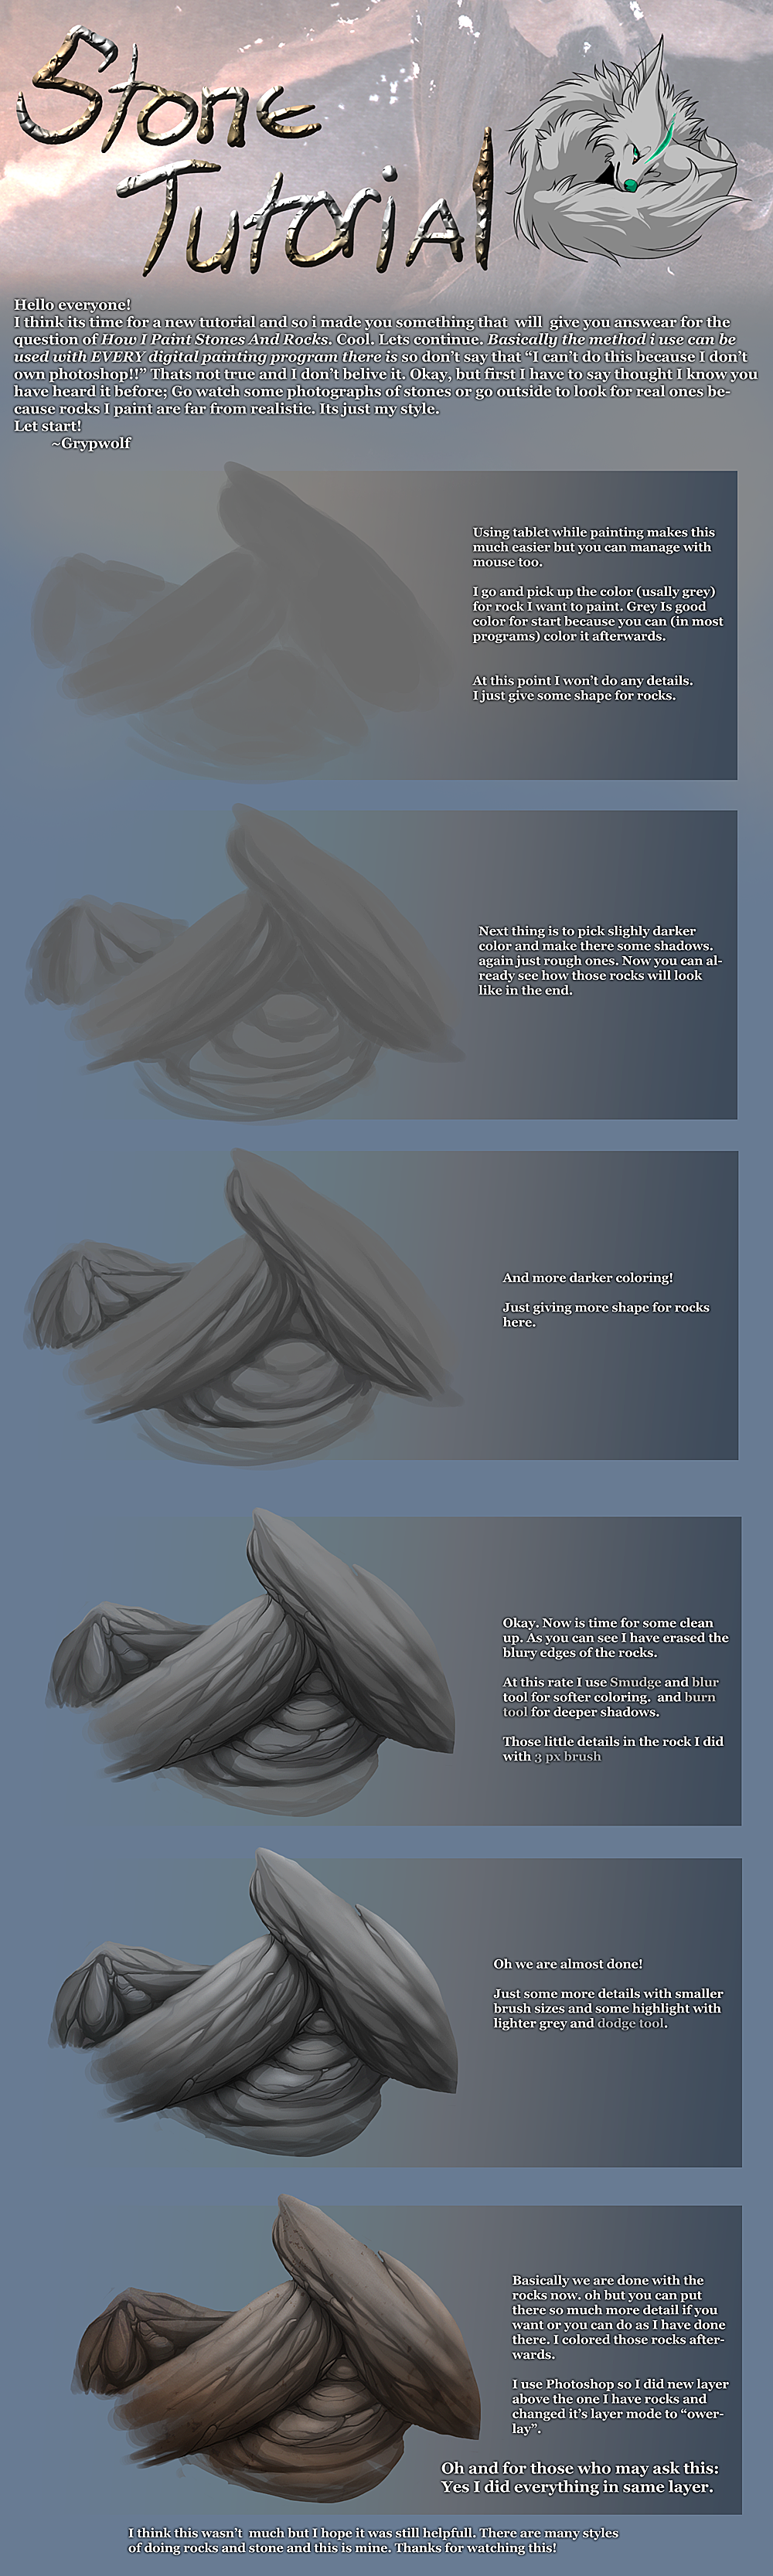 Rock sand cystal on drawing tutorials deviantart sotalean 344 32 stone tutorial by grypwolf baditri Images